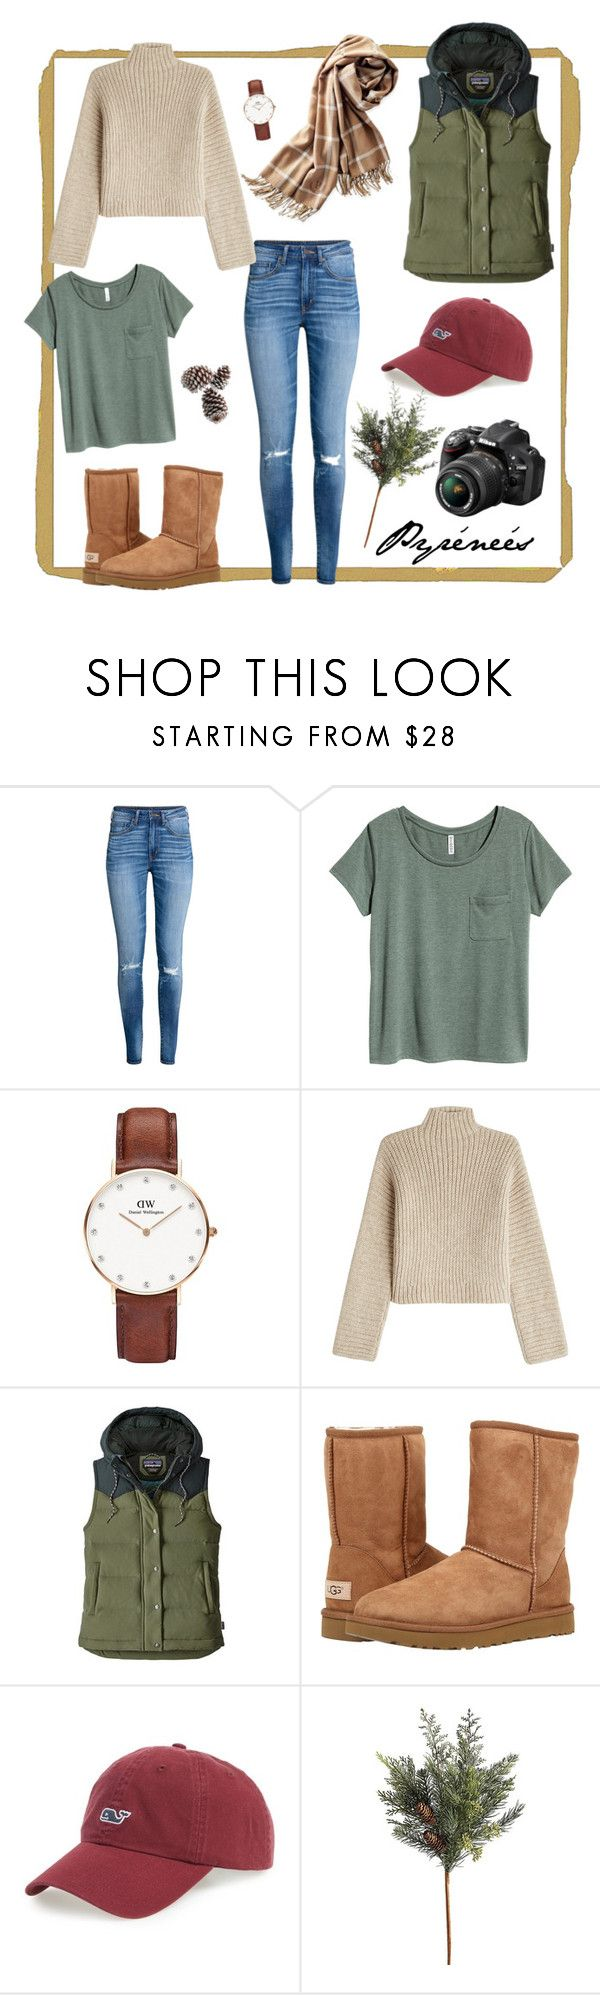 """Pyrenees"" by meritxellespv on Polyvore featuring H&M, Daniel Wellington, Rosetta Getty, Patagonia, UGG Australia, Vineyard Vines, Nikon and Frontgate"